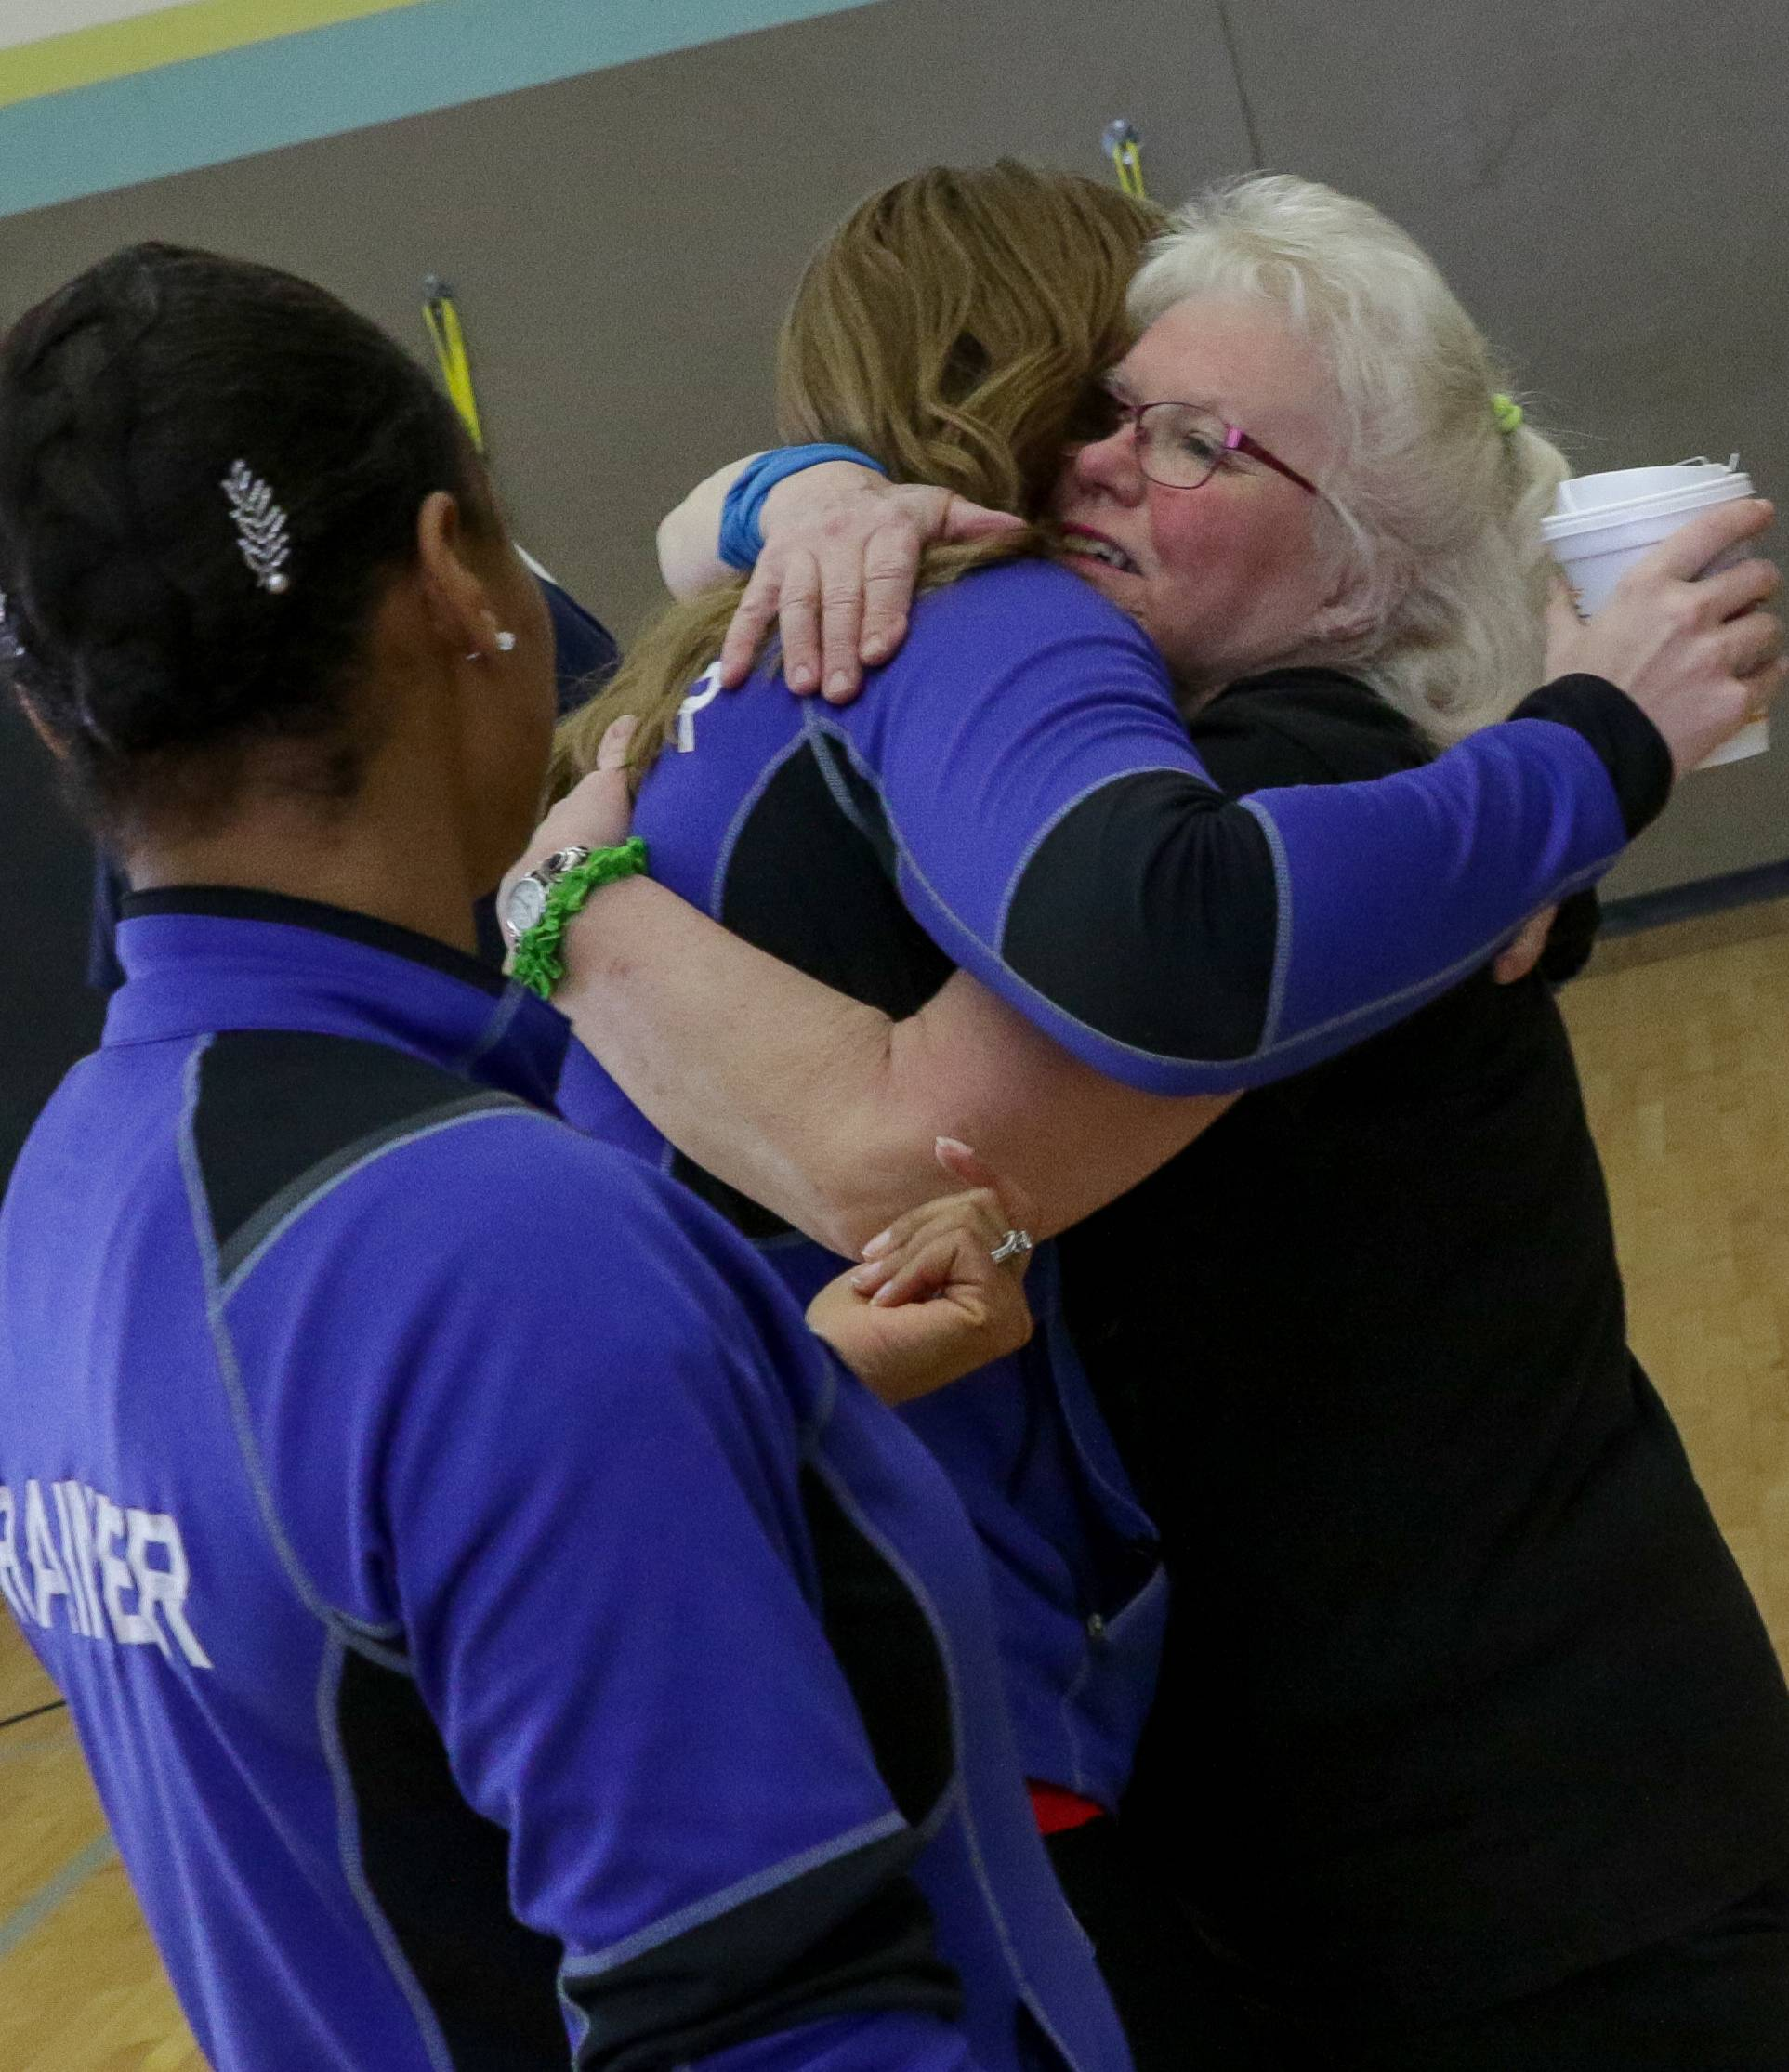 A new woman since doctors inserted a MitraClip into her heart, Michele Golden of Batavia gives a hug to personal trainer Monica Green at Delnor Health & Wellness Center in Geneva.